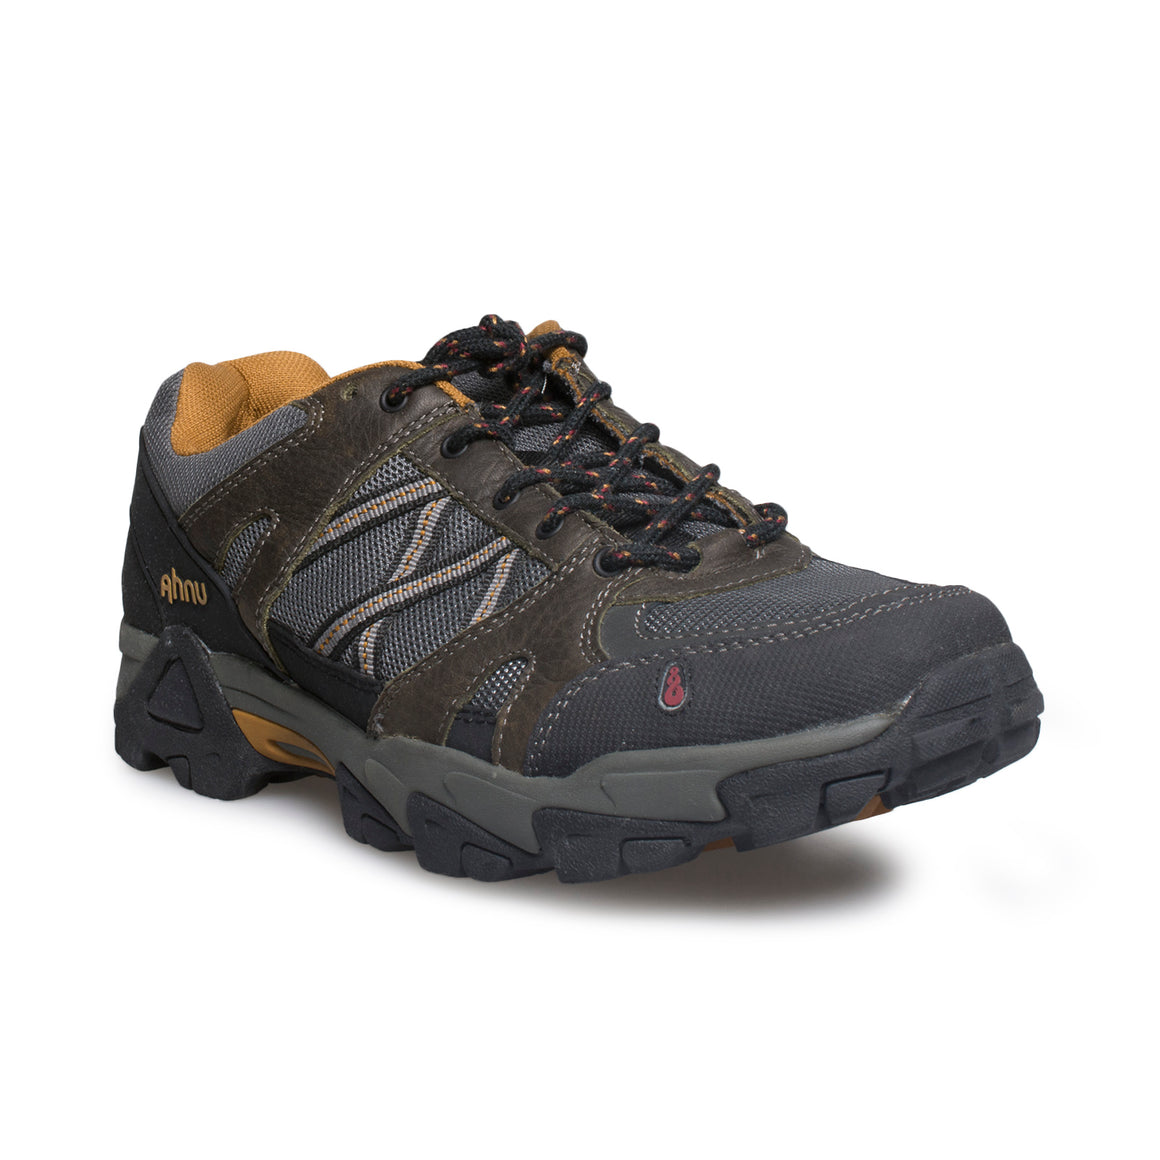 AHNU Moraga Pewter Hiking Boots - Men's